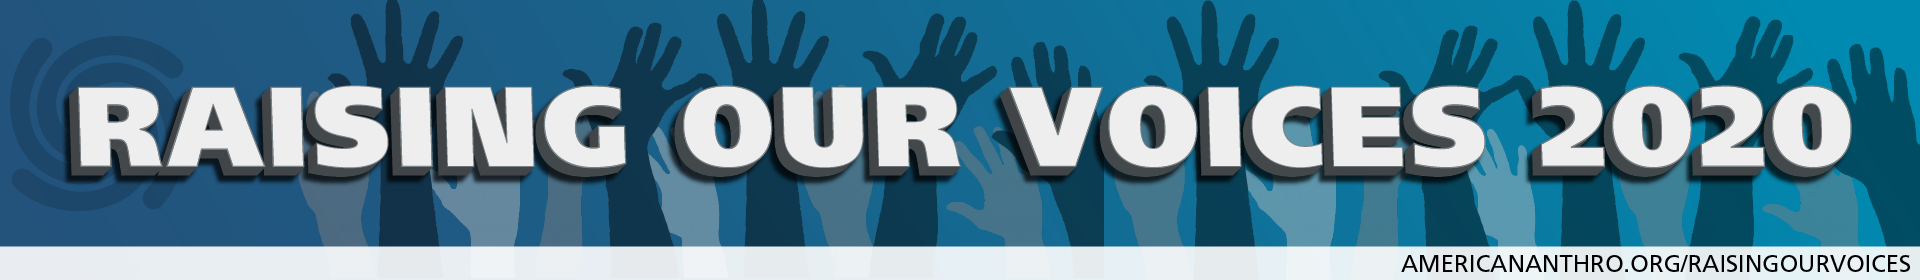 A digital graphic with 'Raising Our Voices 2020' in uppercase, bold white font against a dark aqua gradient background. Behind the 'R' in 'Raising' is the AAA swirl logo in a deeper blue tone. Underneath the text are multiple silhouettes of upraised semi-transparent hands in various skin tones. Across the bottom is a light blue bar with AmericanAnthro.org/RaisingOurVoices